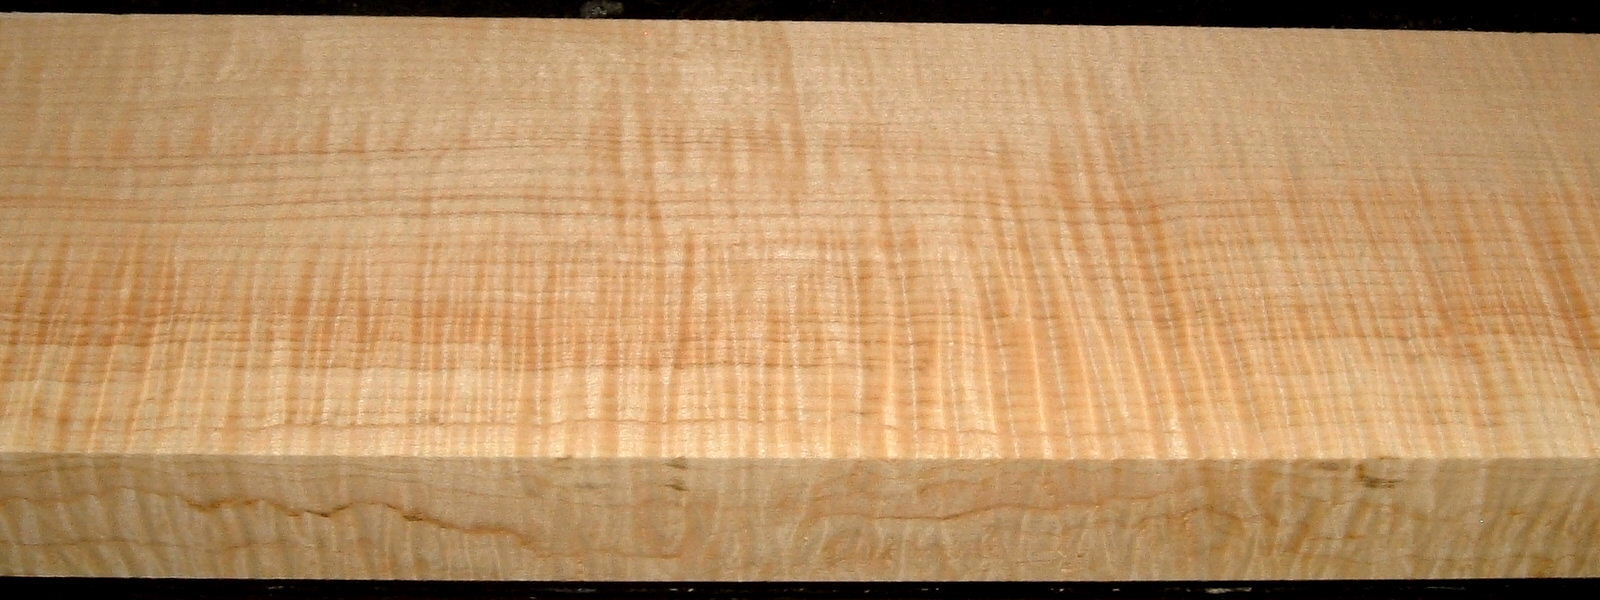 QS2001-3, 1-1/2x4-1/2x39, Quartersawn Curly Maple